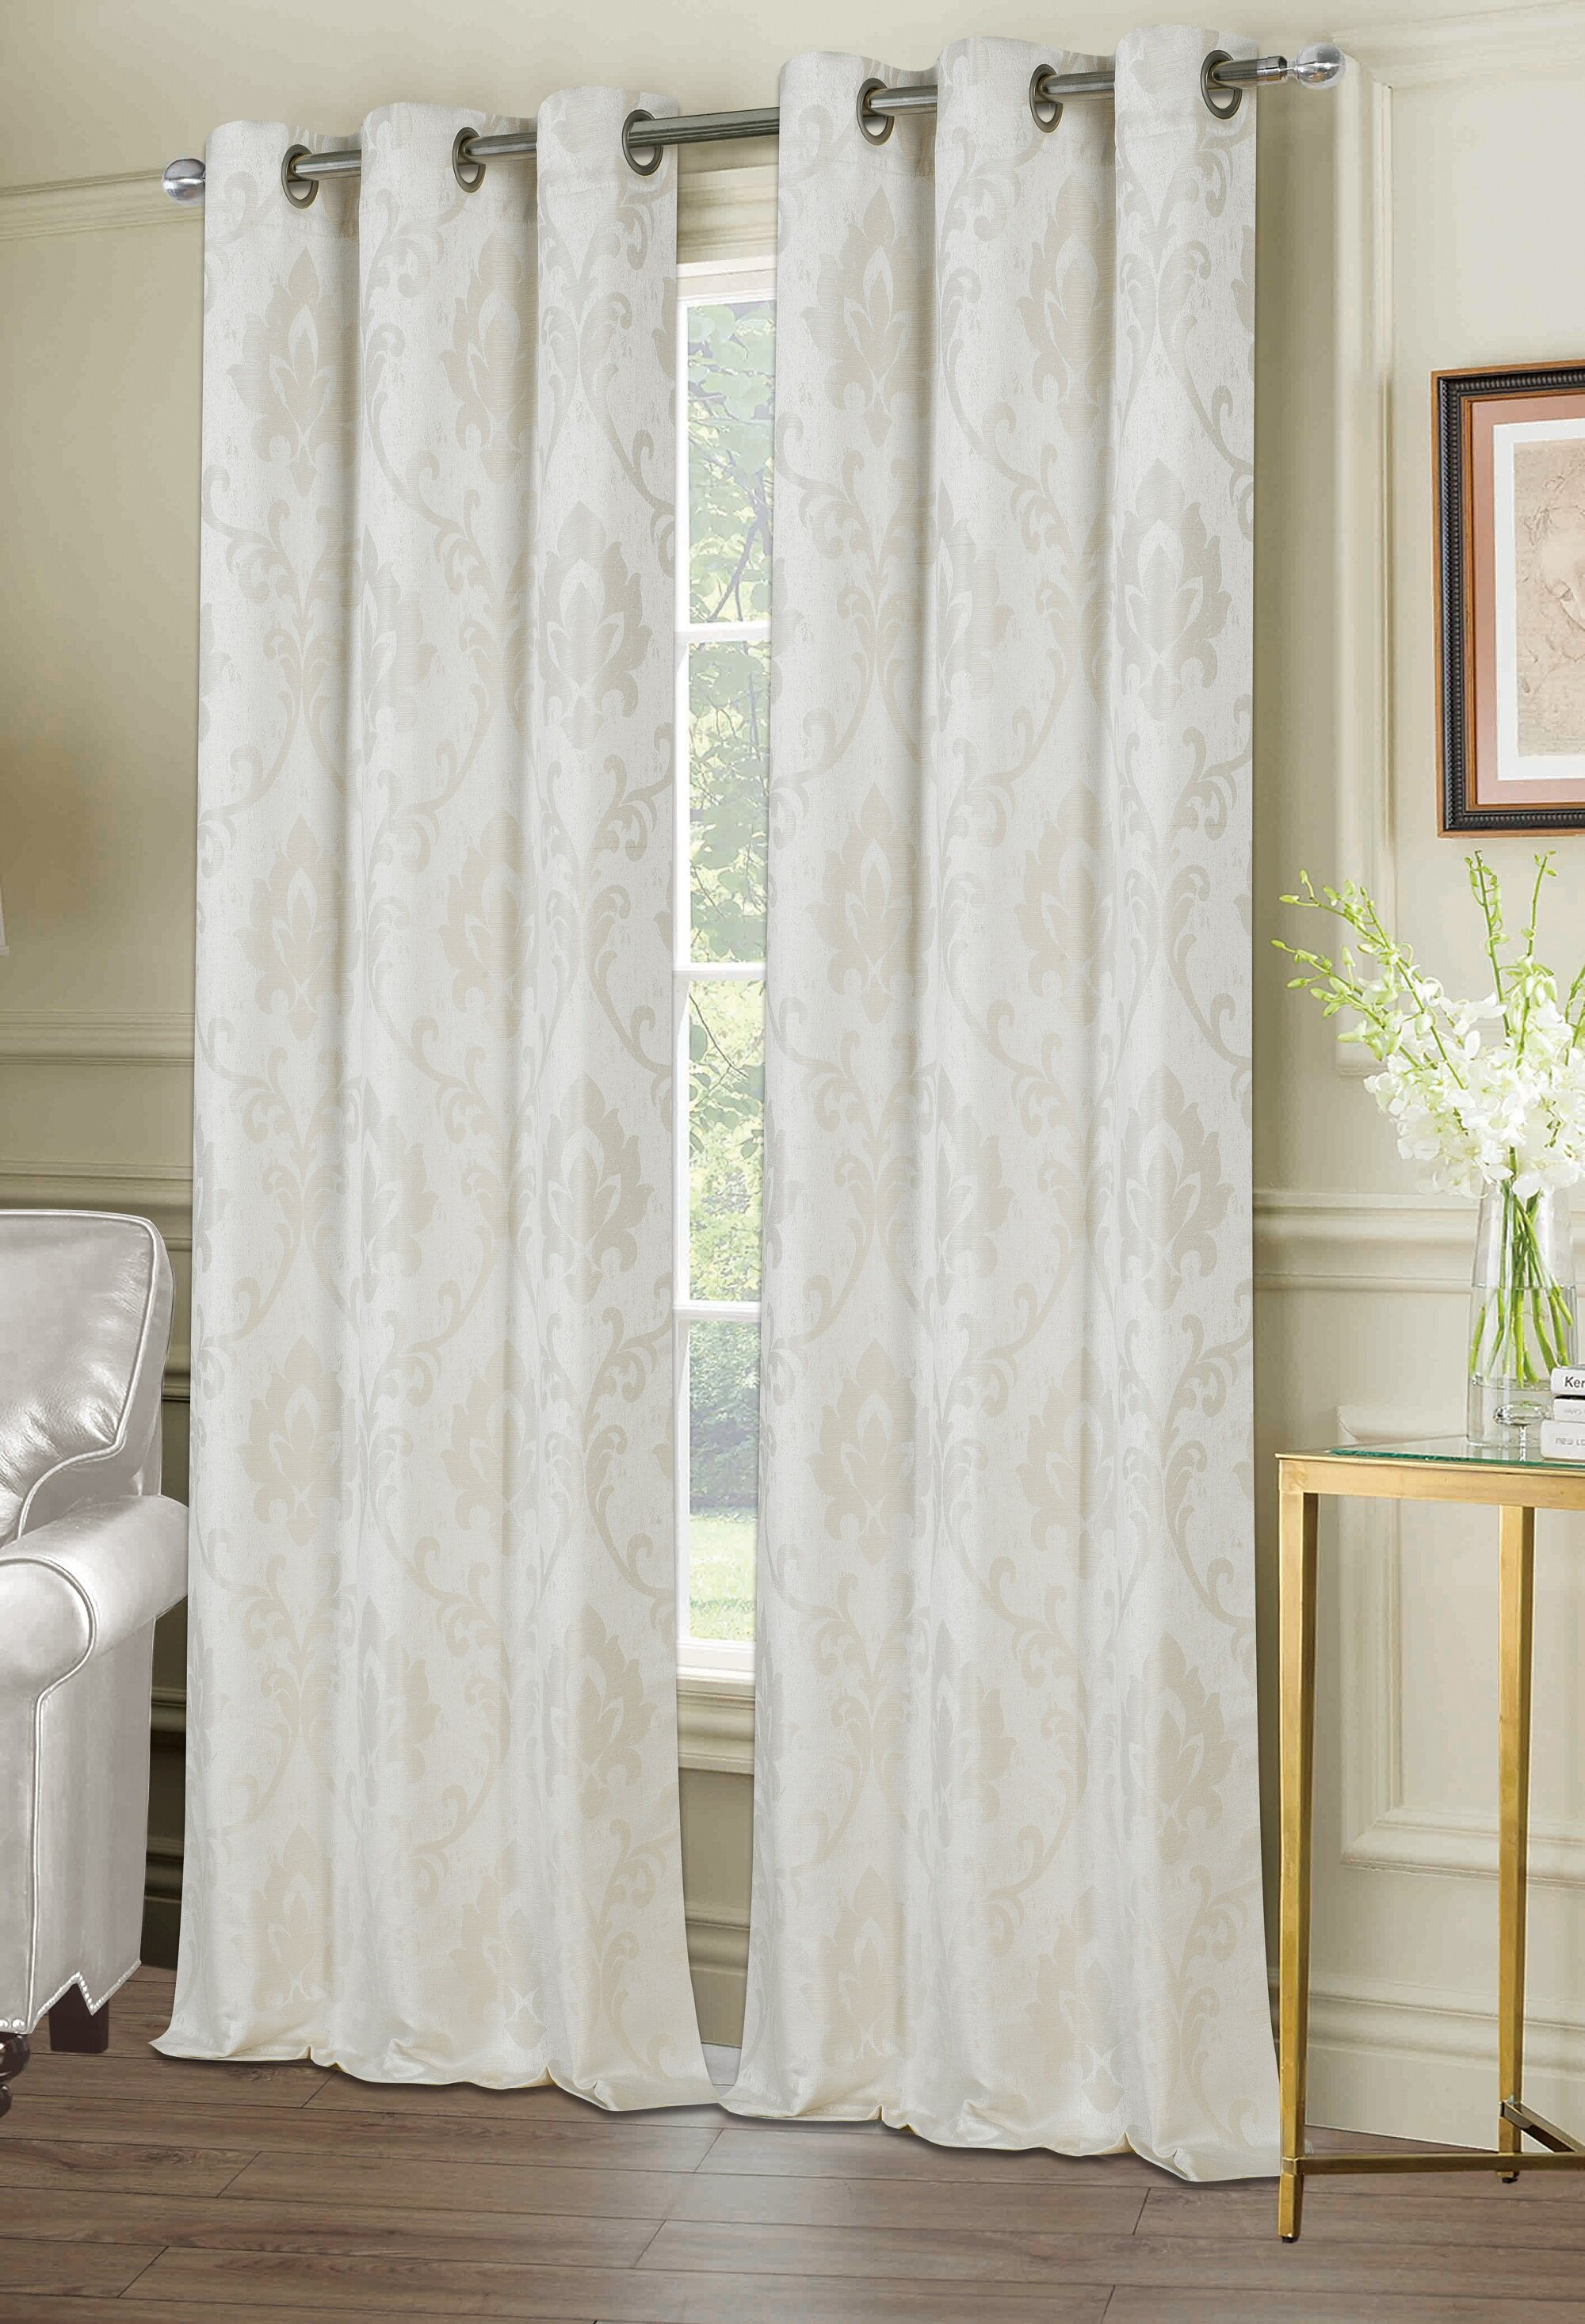 Maryville Window Damask Room Darkening Grommet Curtain Panels With Regard To Andorra Watercolor Floral Textured Sheer Single Curtain Panels (View 20 of 20)